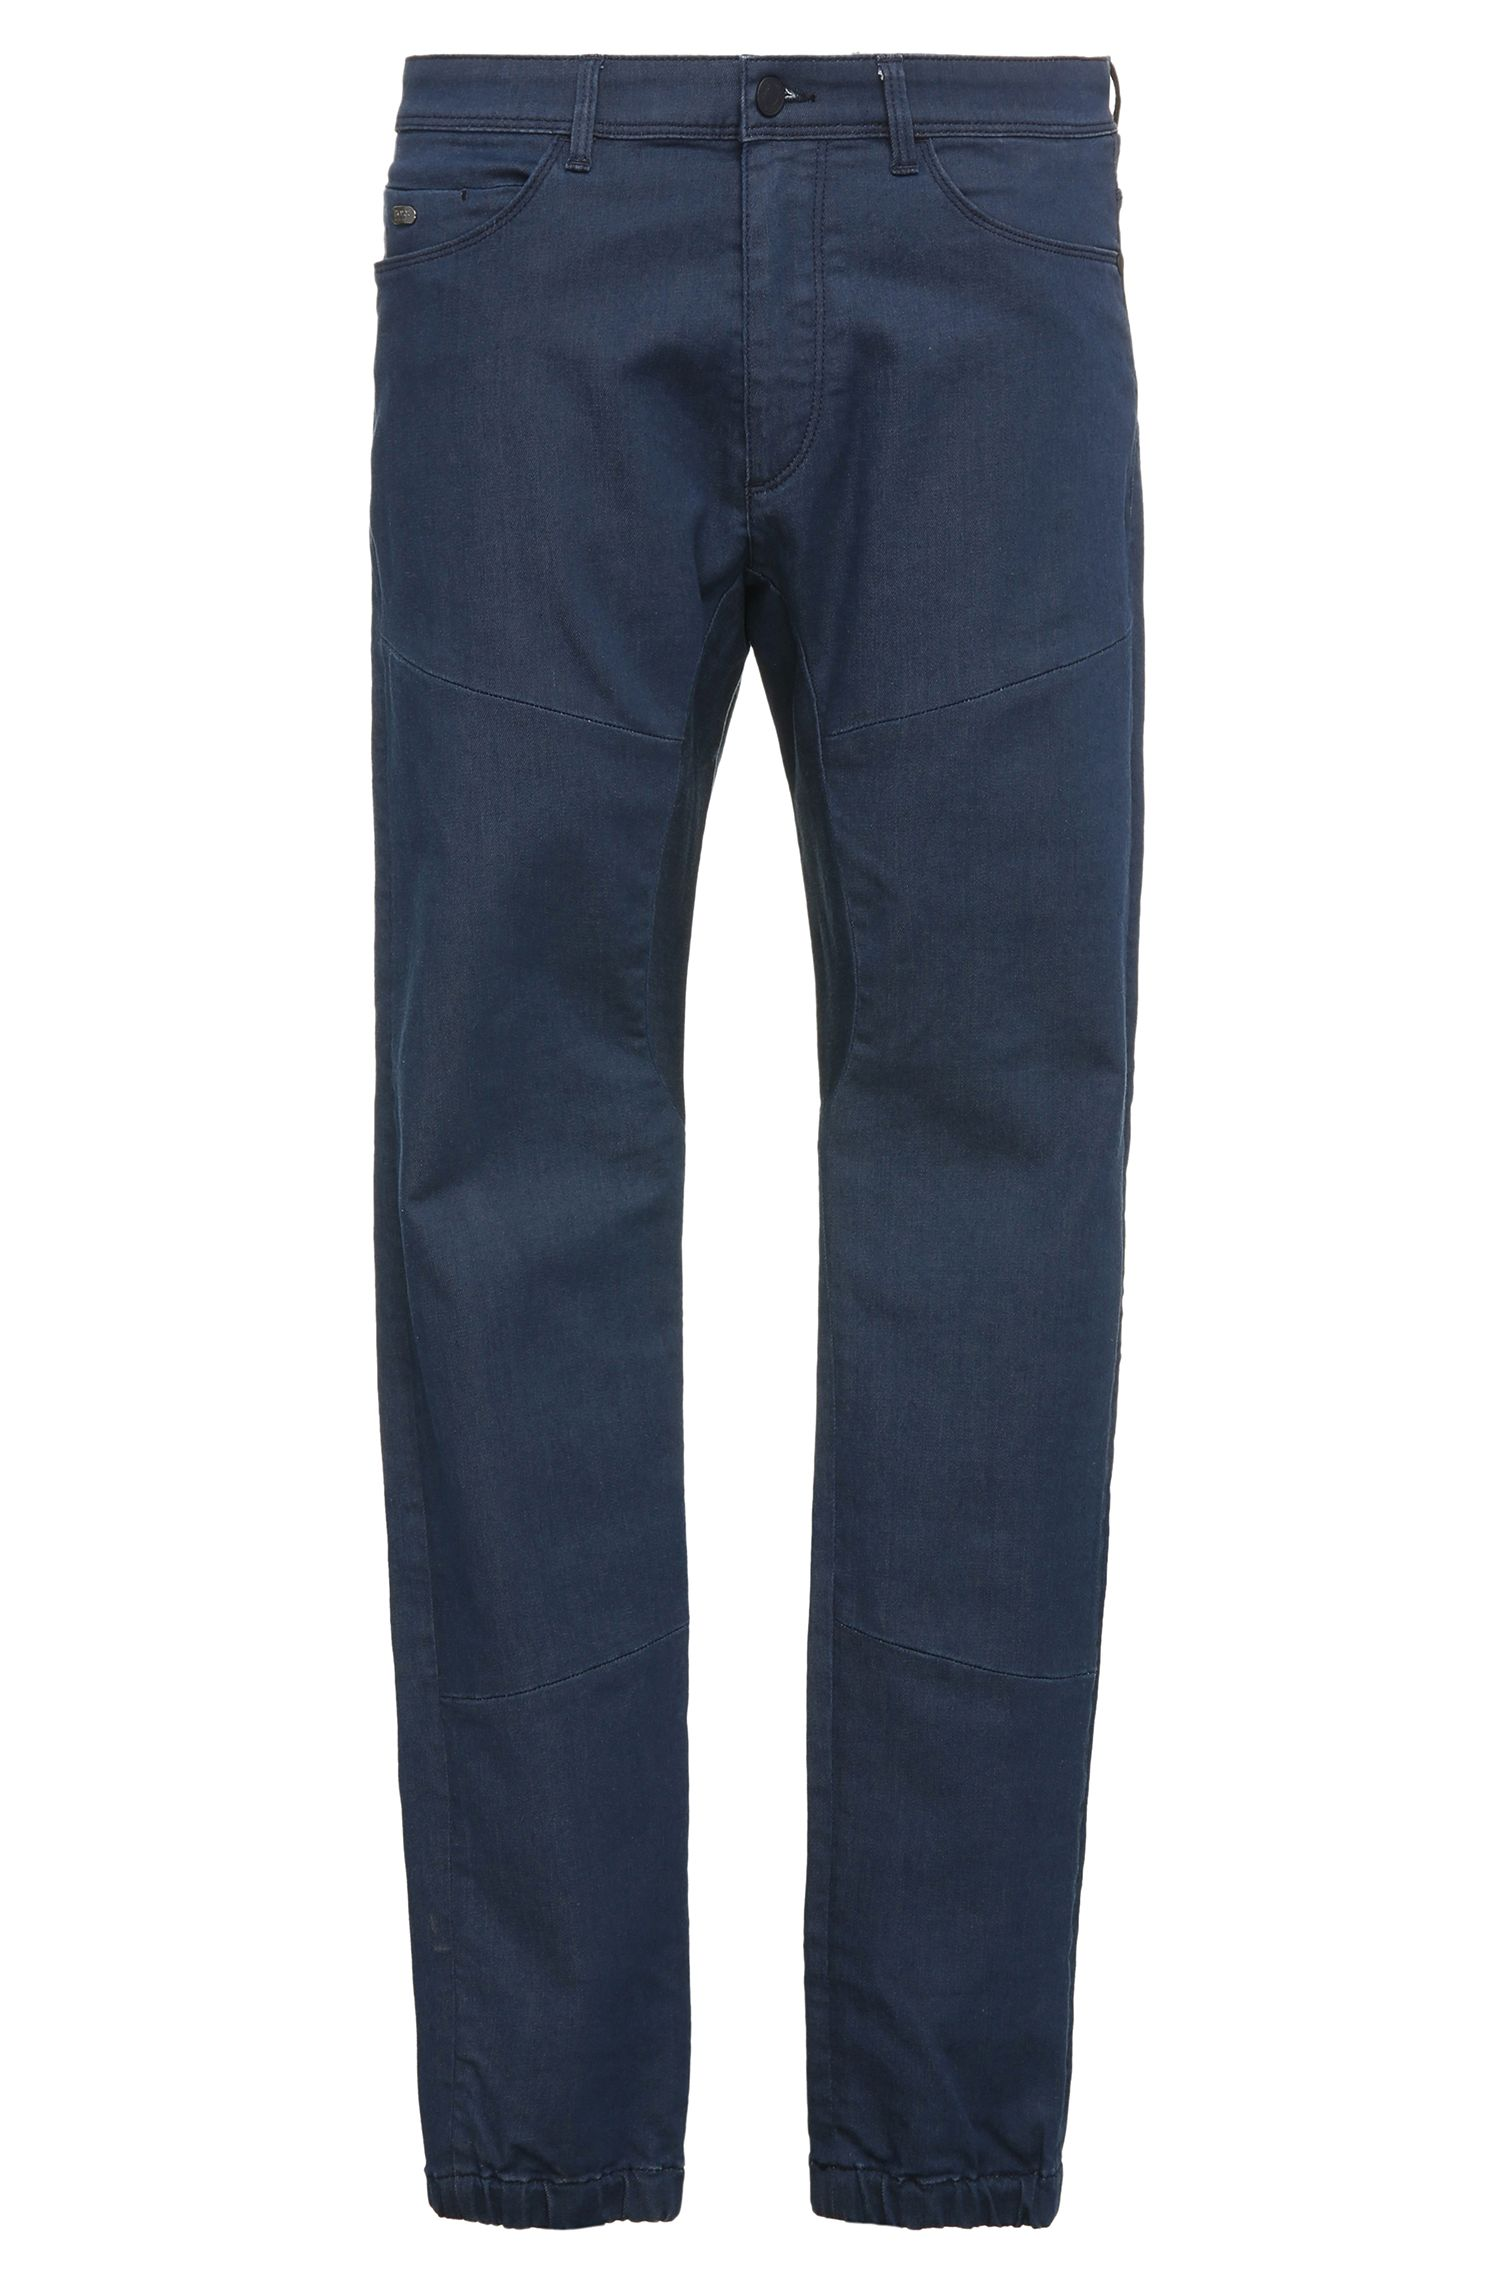 Stretch Cotton Jean, Tapered Fit | Danyel